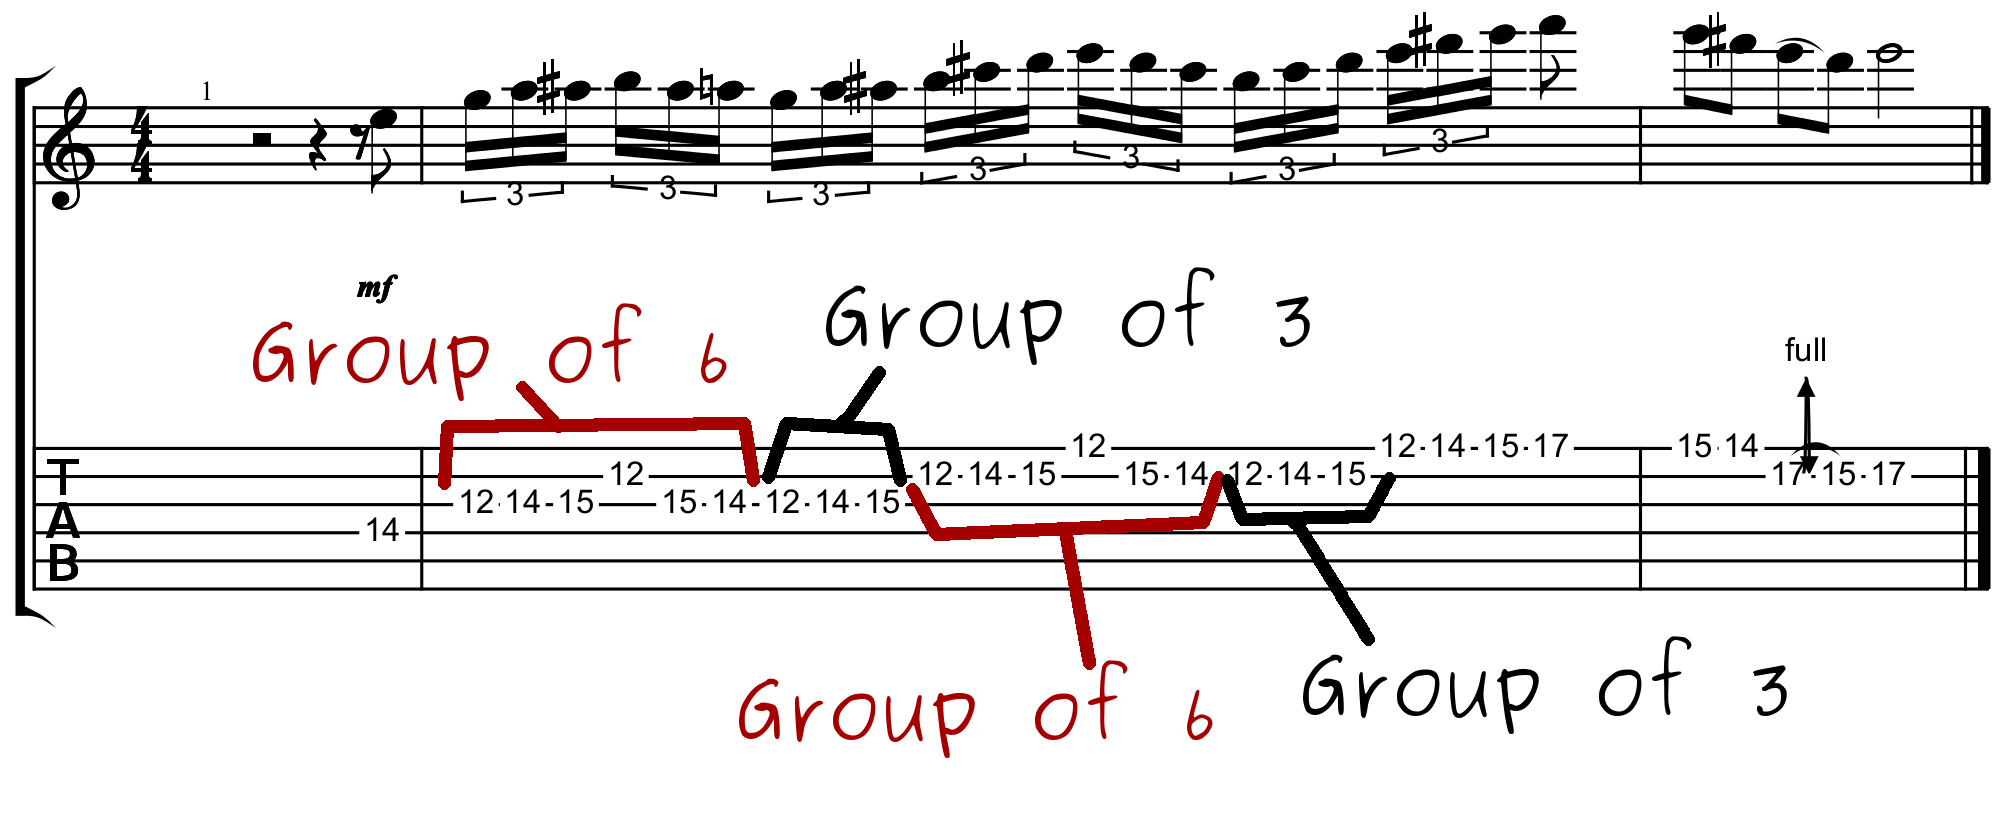 using different note groupings over the beat to create tension in a lick